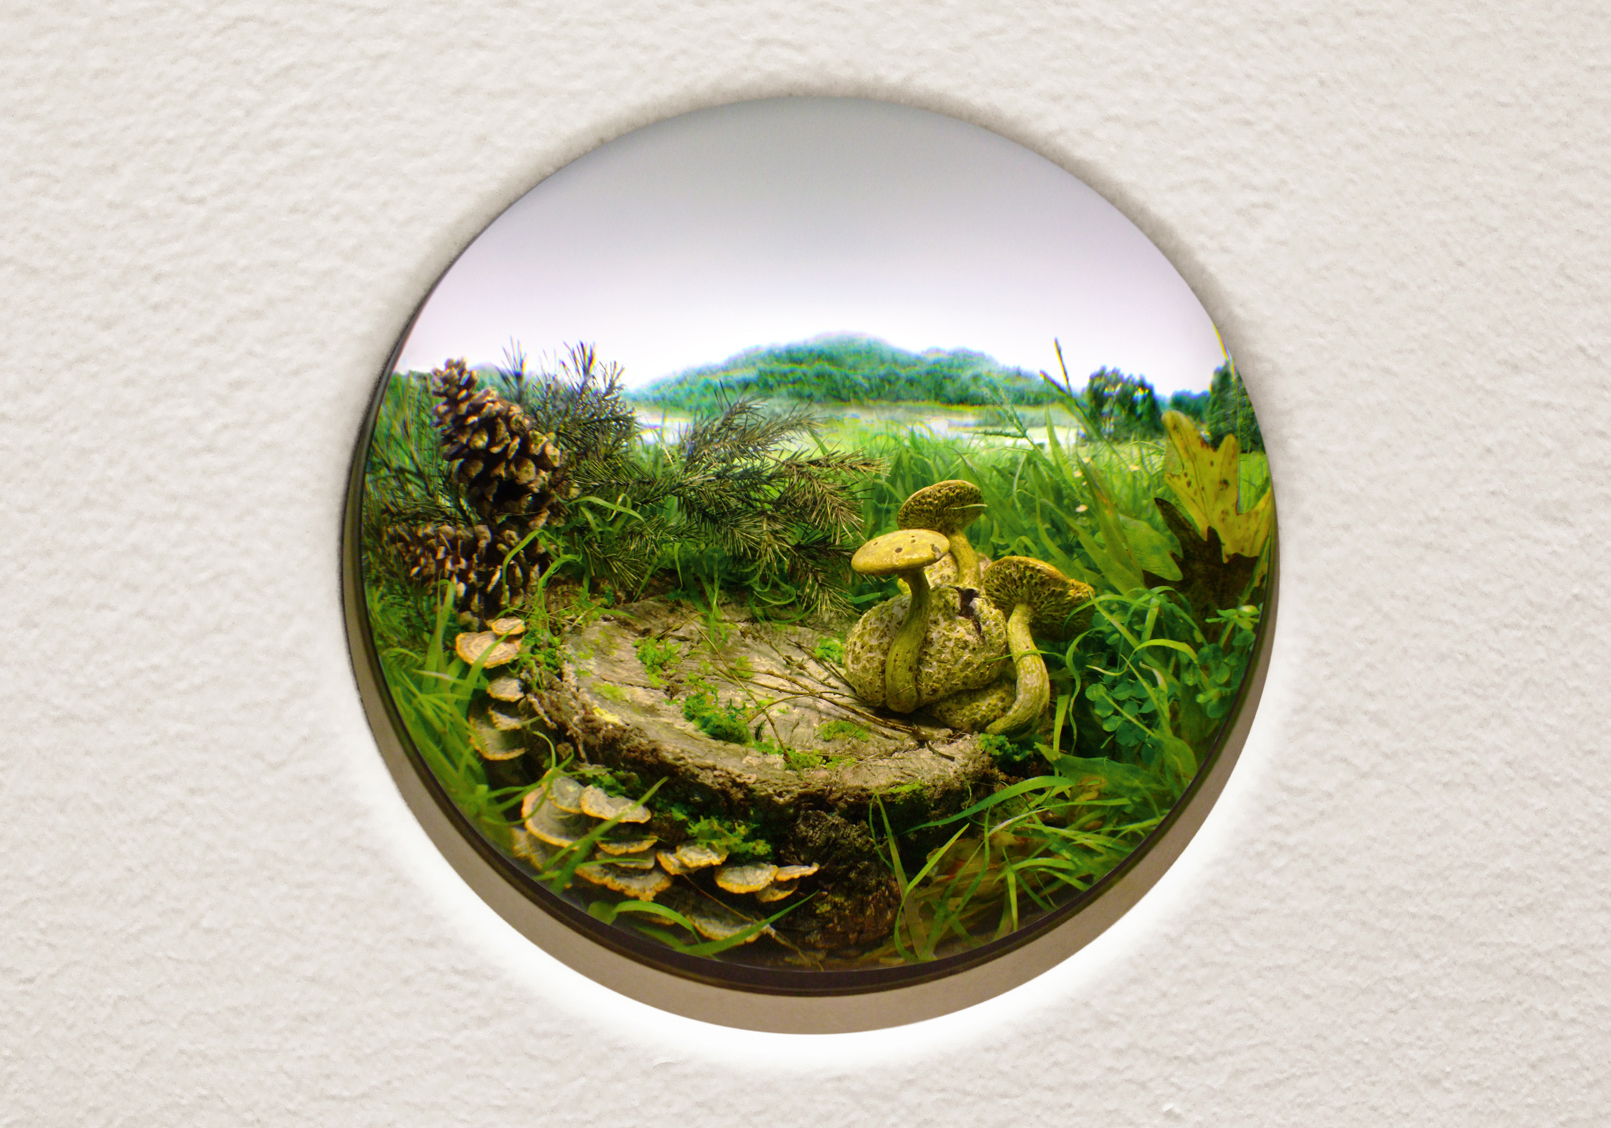 Patrick Jacobs,   Parasitic Bolete with Pine Cones , 2014,diorama viewed through 2.75 in window,12.75 x 18.50 x 11.5 in.,Styrene, acrylic, cast neoprene, paper, ash,talc, starch, polyurethane foam, acrylite,vinyl film, wood, steel, lighting, and BK7 glass, artwork and image courtesy of the artist